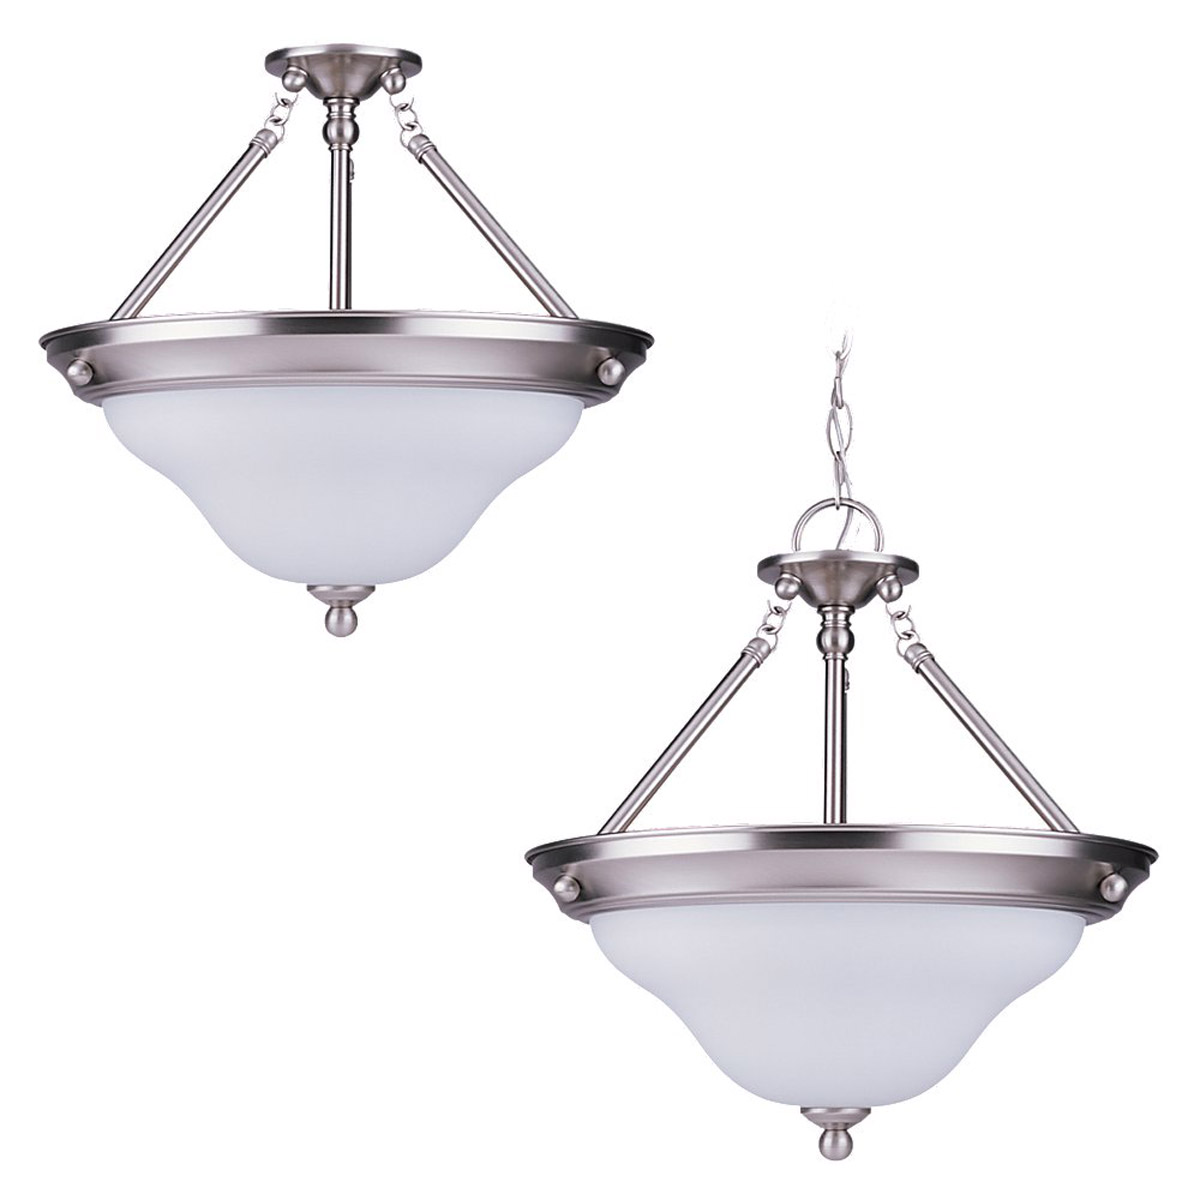 Sea Gull Lighting Sussex 3 Light Pendant Convertible in Brushed Nickel 69562BLE-962